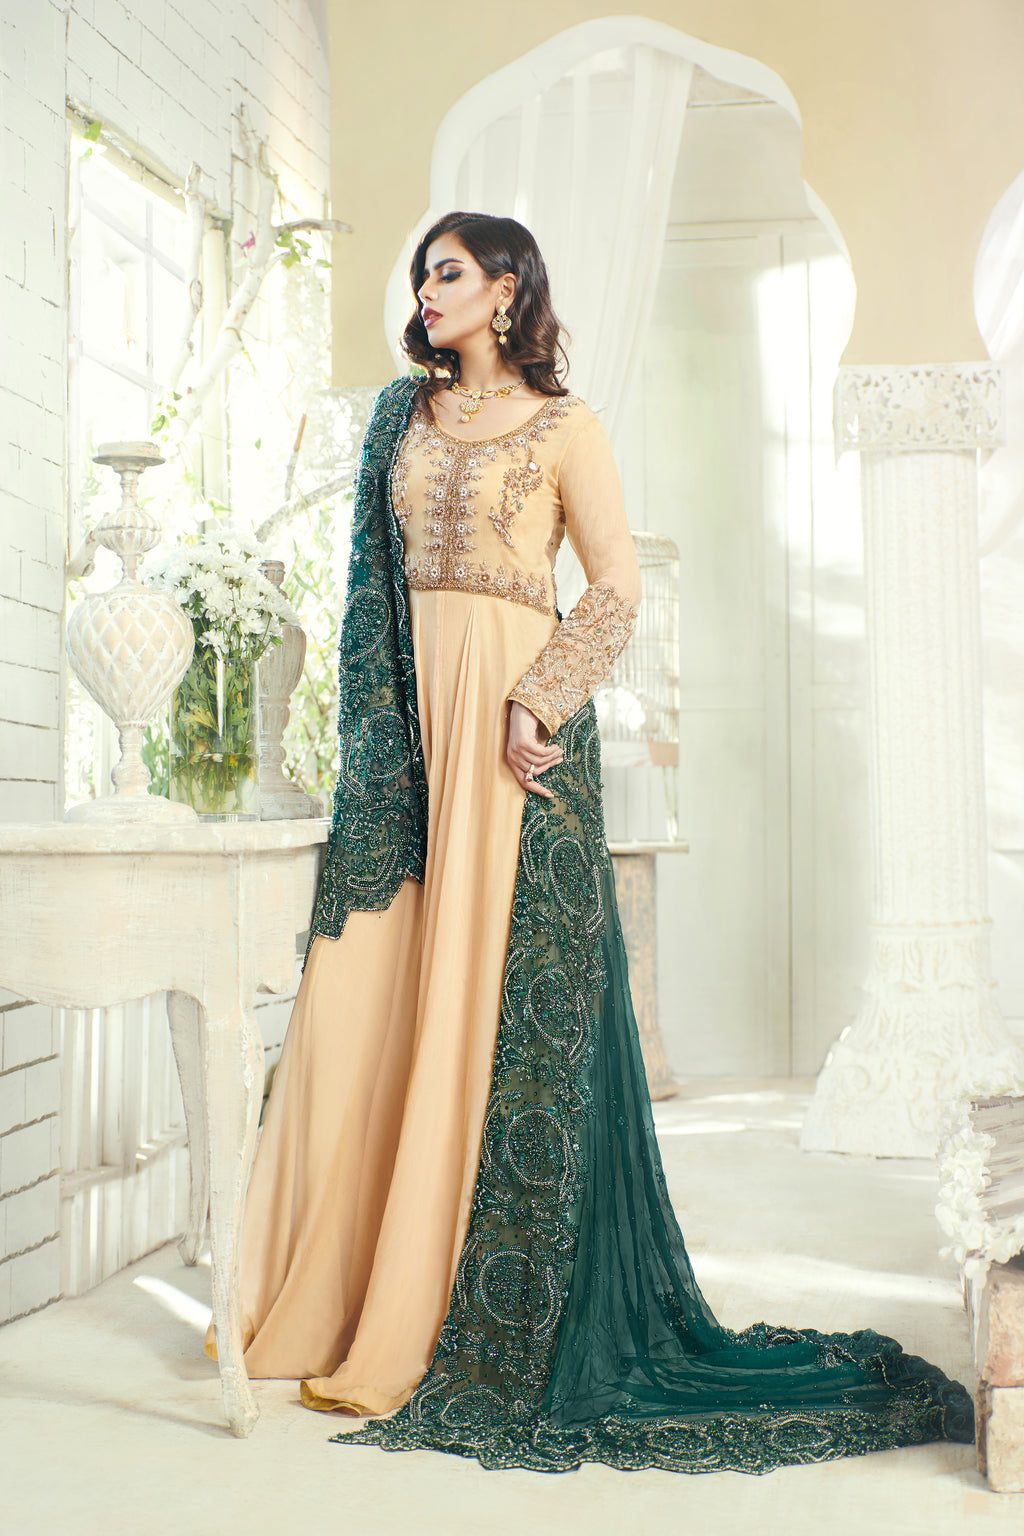 latest dress design for wedding, designer dresses for wedding, dresses for weddings,